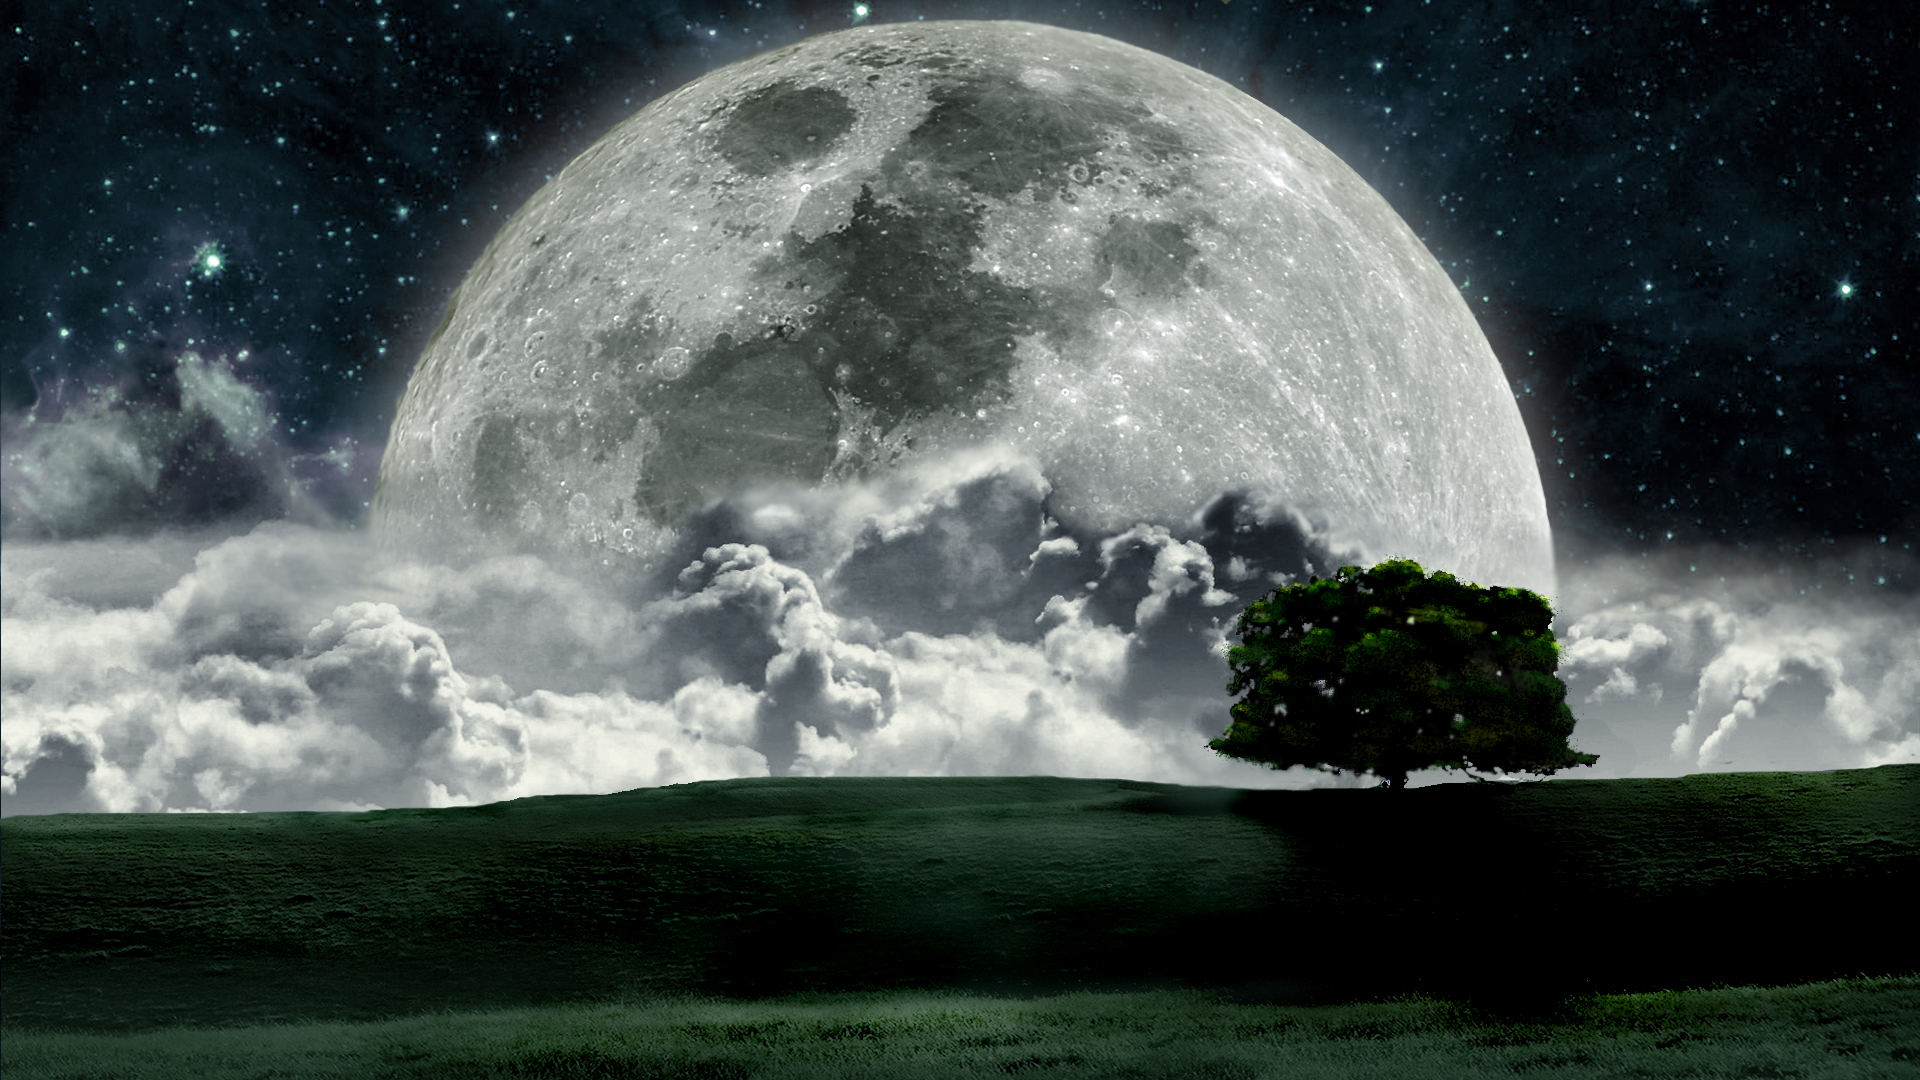 Cool Moon Wallpaper 9679